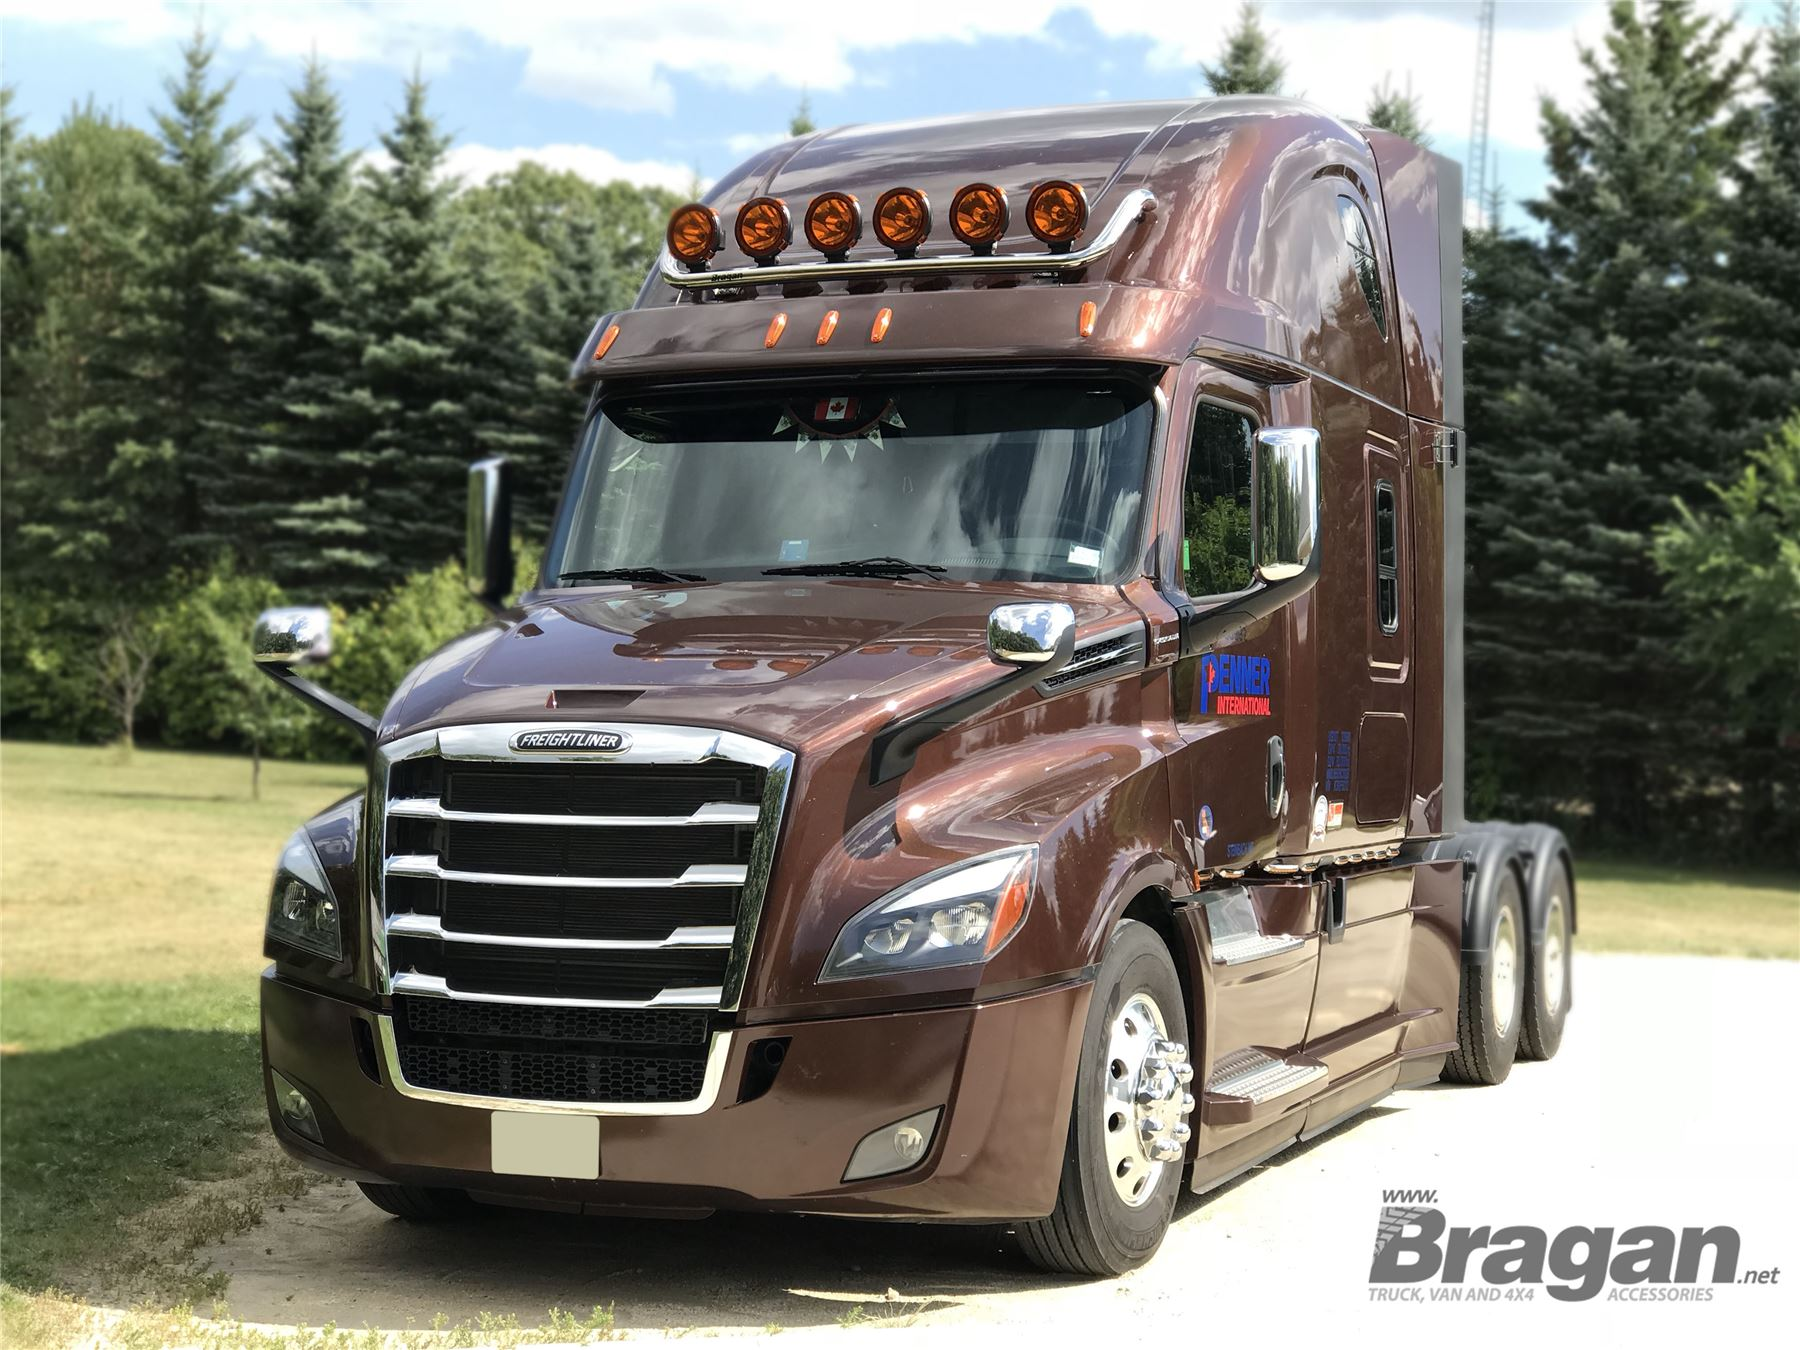 Details about To Fit Freightliner Cascadia Evolution S/Steel Tapered Roof  Bar Big Rig Truck